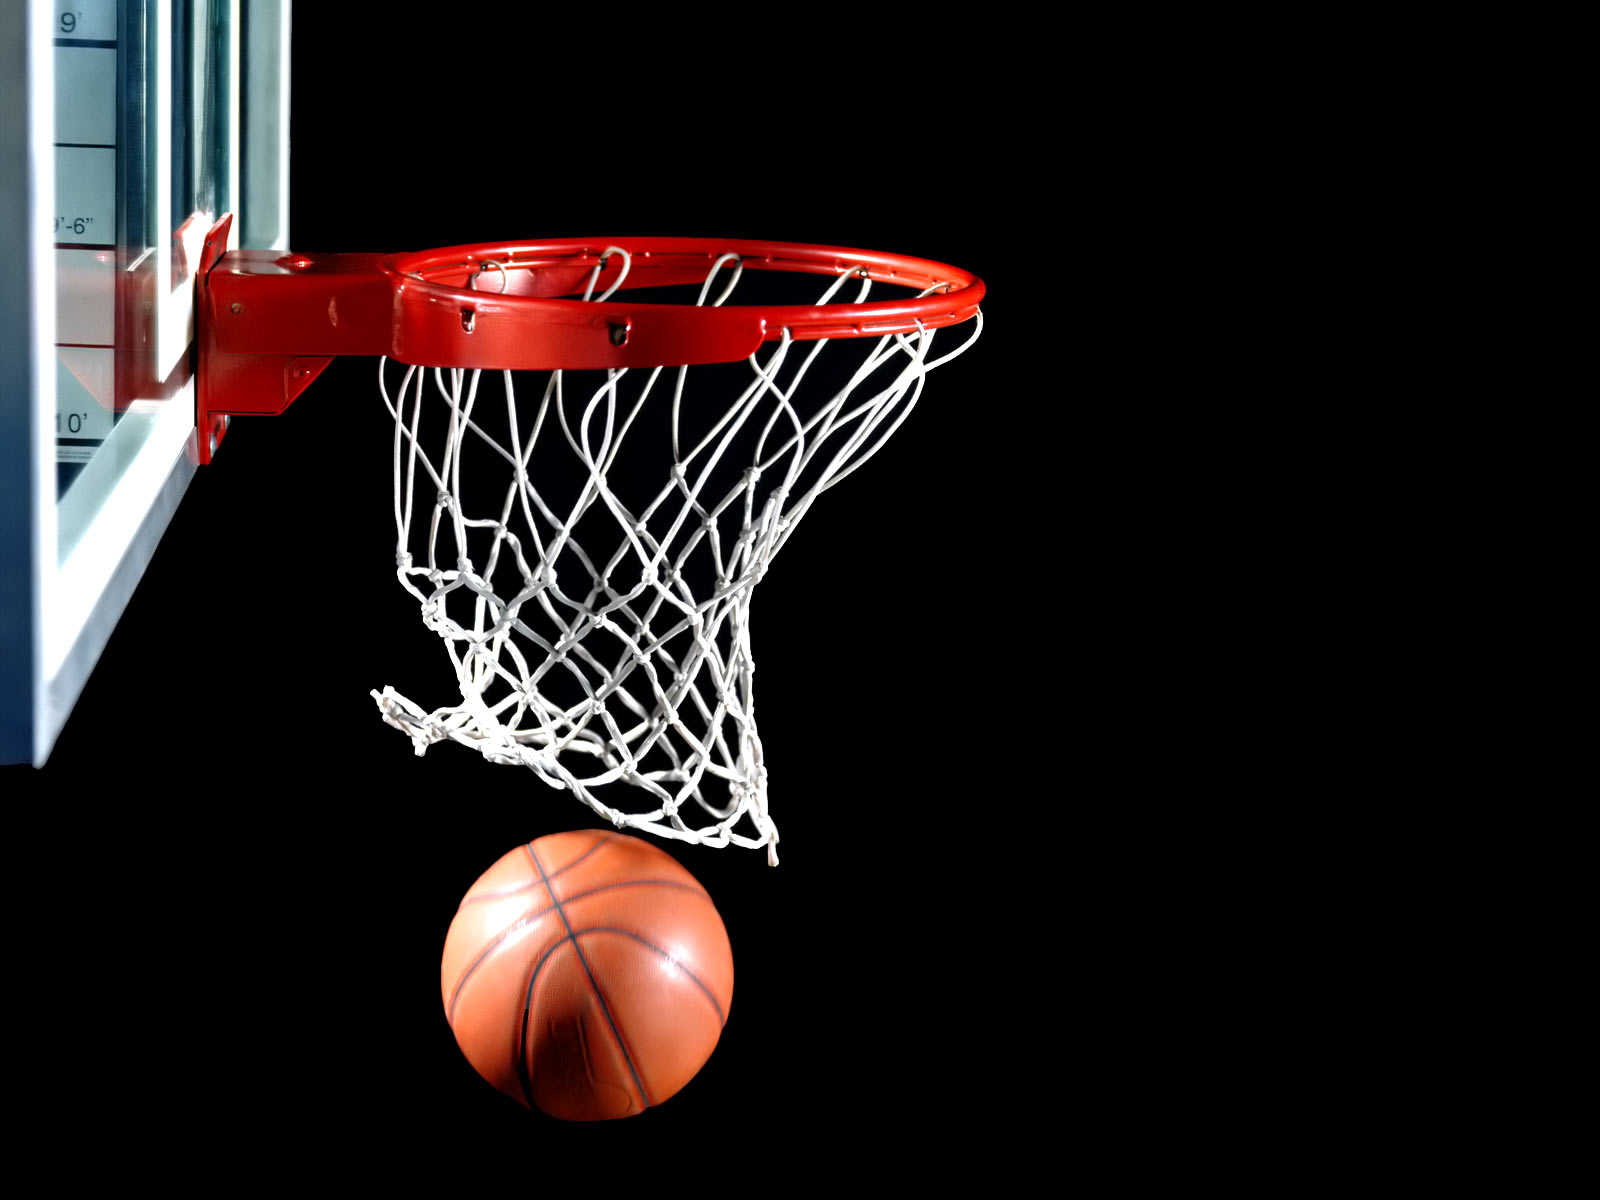 Basketball Wallpapers Hd Amazing Pictures